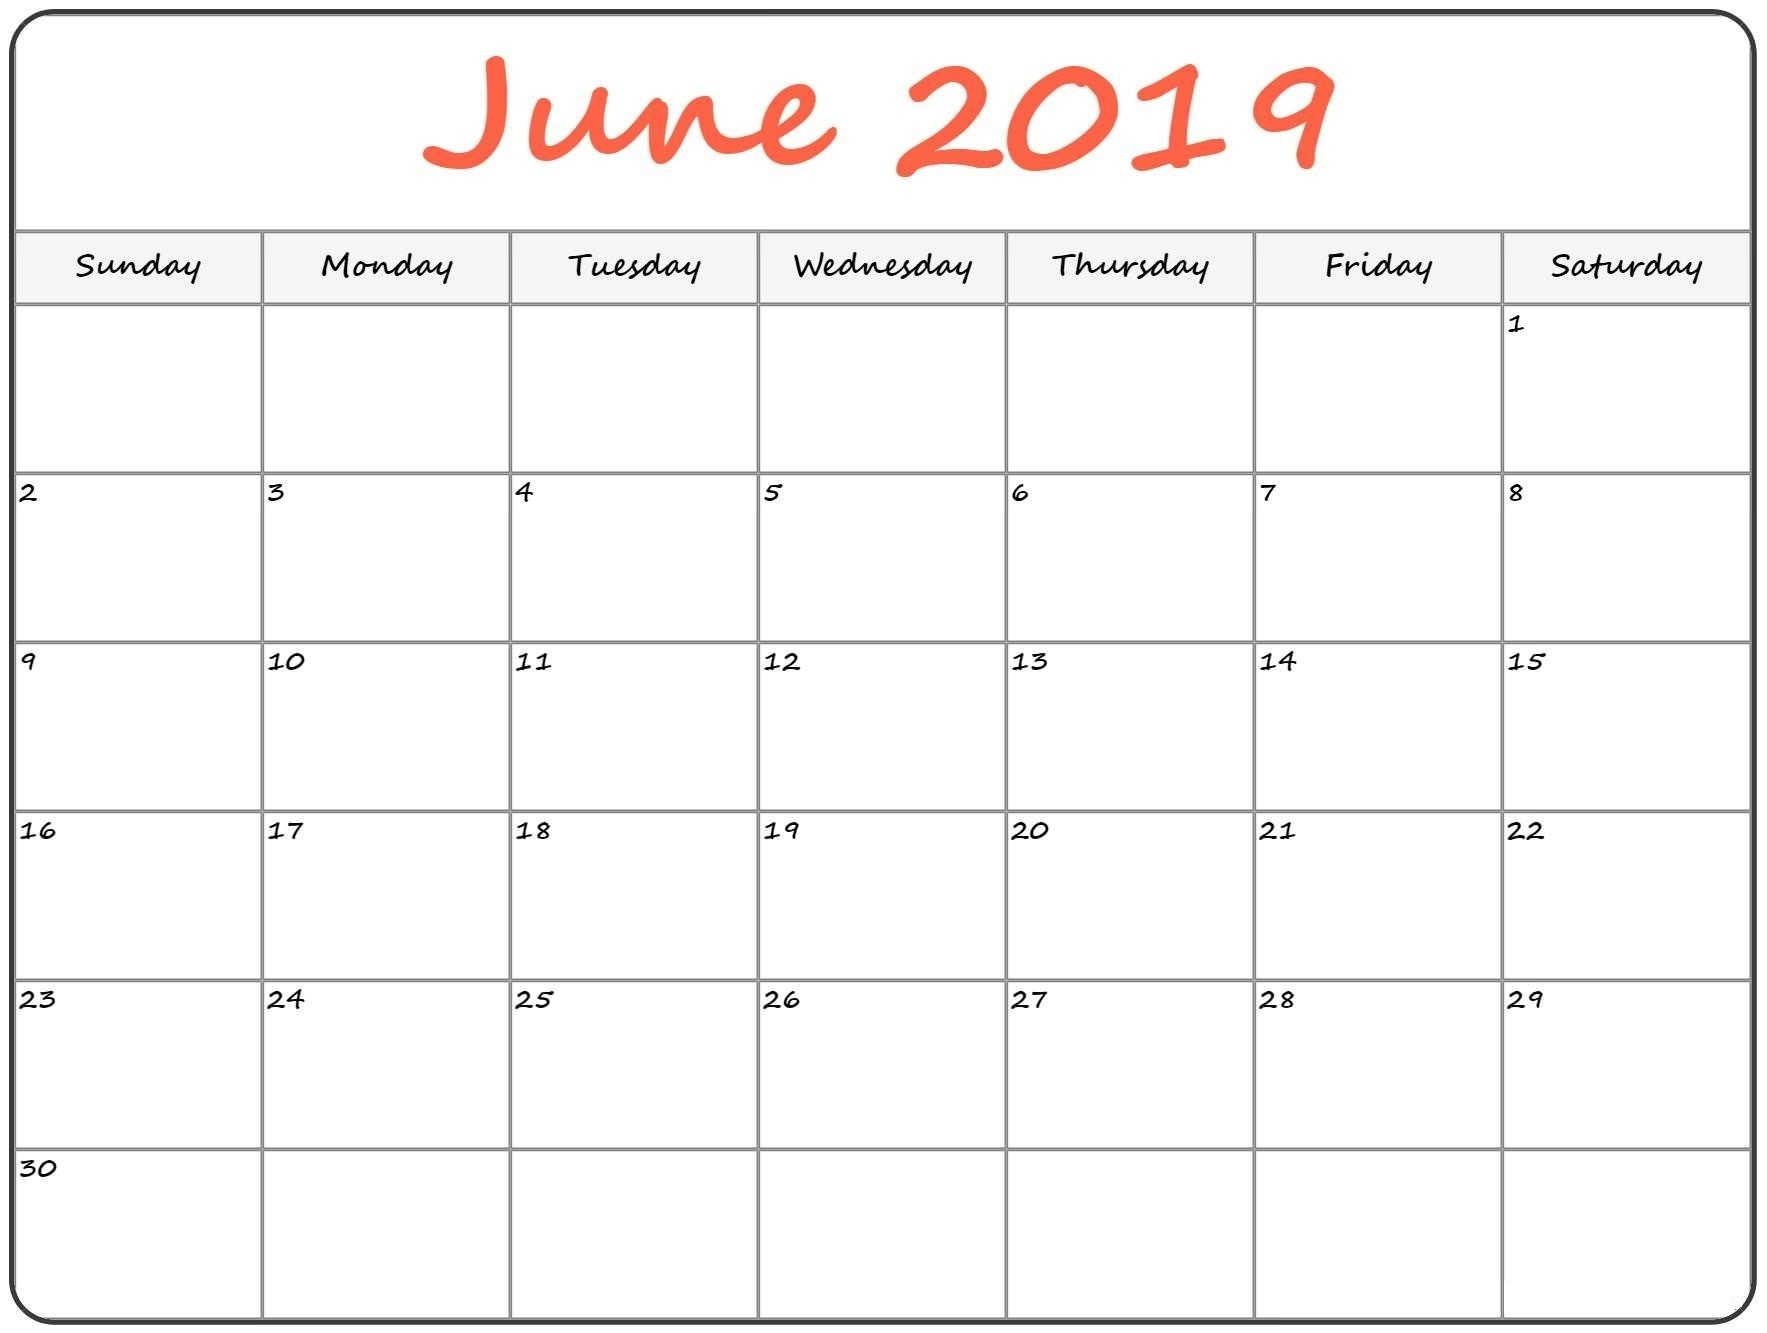 Printable June 2019 Calendarmonth - Free Printable  Blank Full Page Calendar Printable June